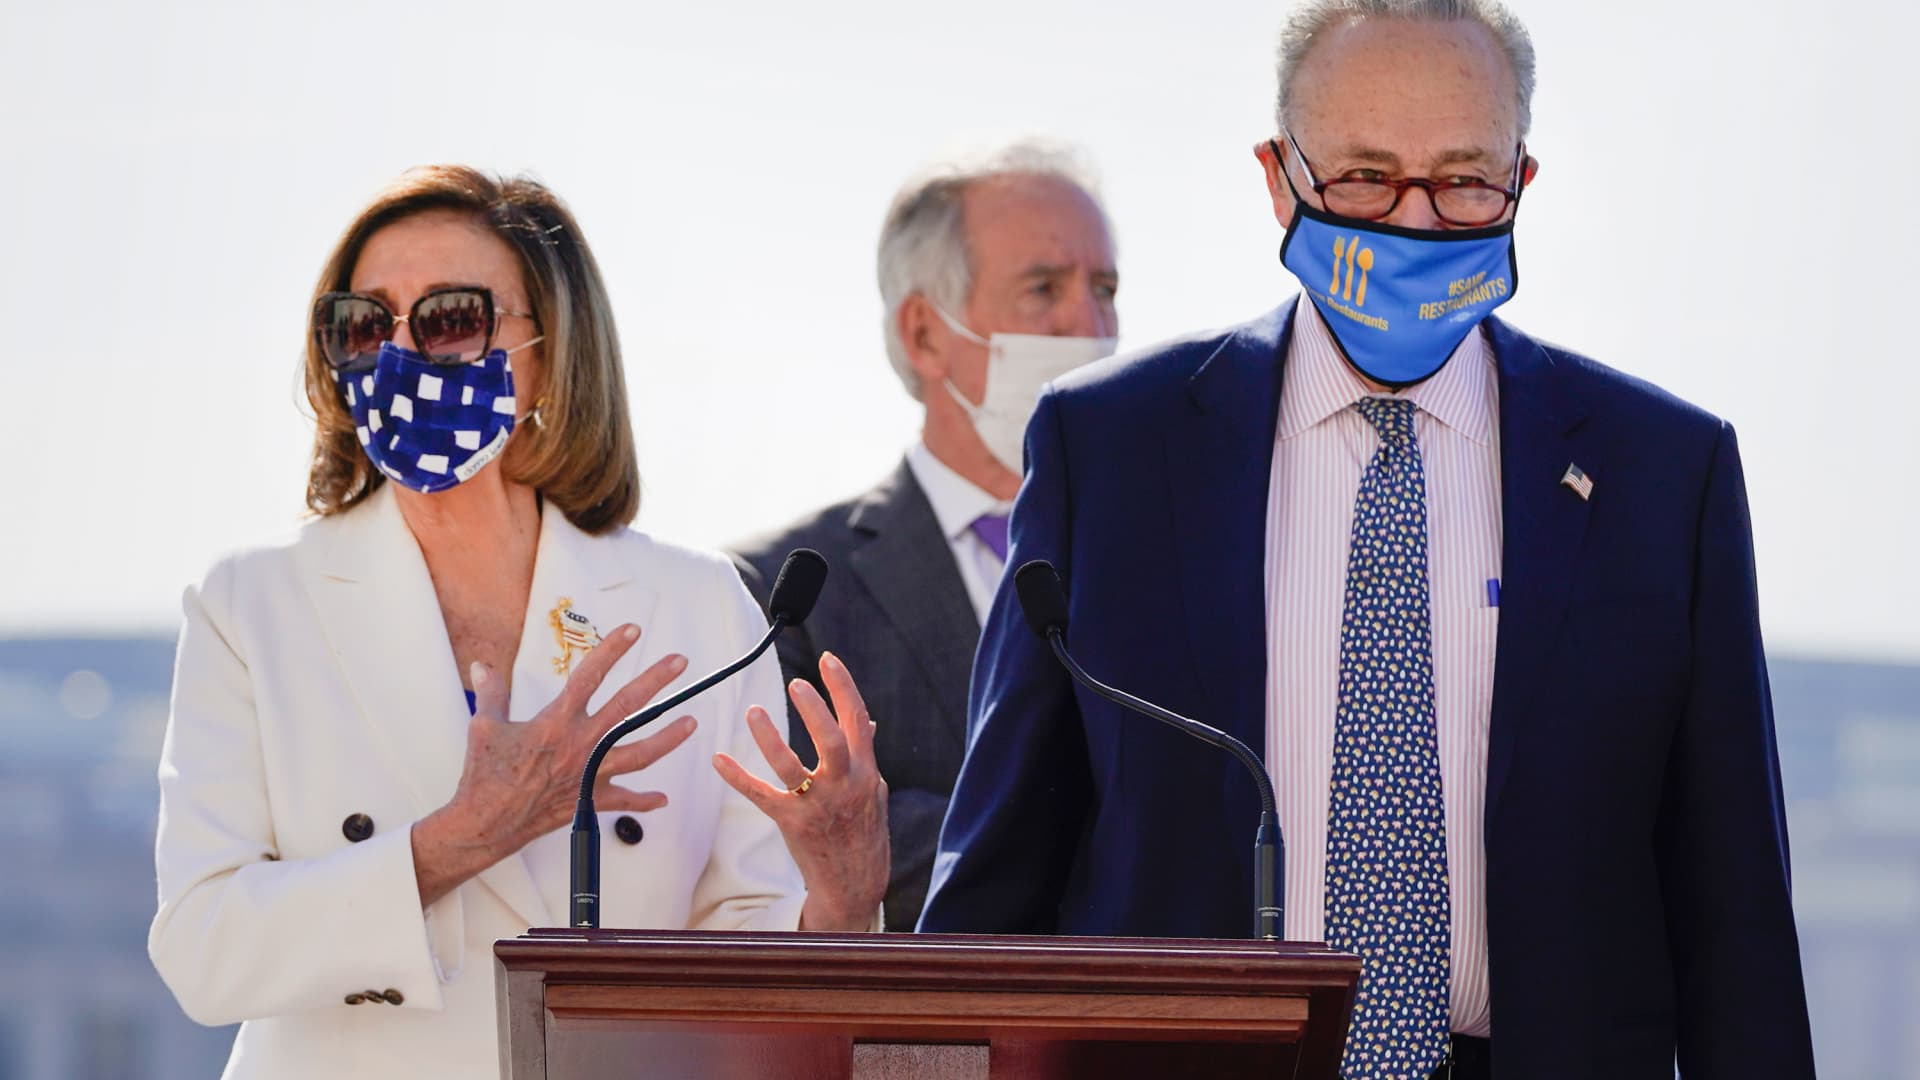 House Speaker Nancy Pelosi of Calif., speaks as Senate Majority Leader Chuck Schumer of N.Y., listens during an enrollment ceremony for the $1.9 trillion COVID-19 relief bill, accompanied by Senate Majority Leader Chuck Schumer of N.Y., on Capitol Hill, Wednesday, March 10, 2021, in Washington.